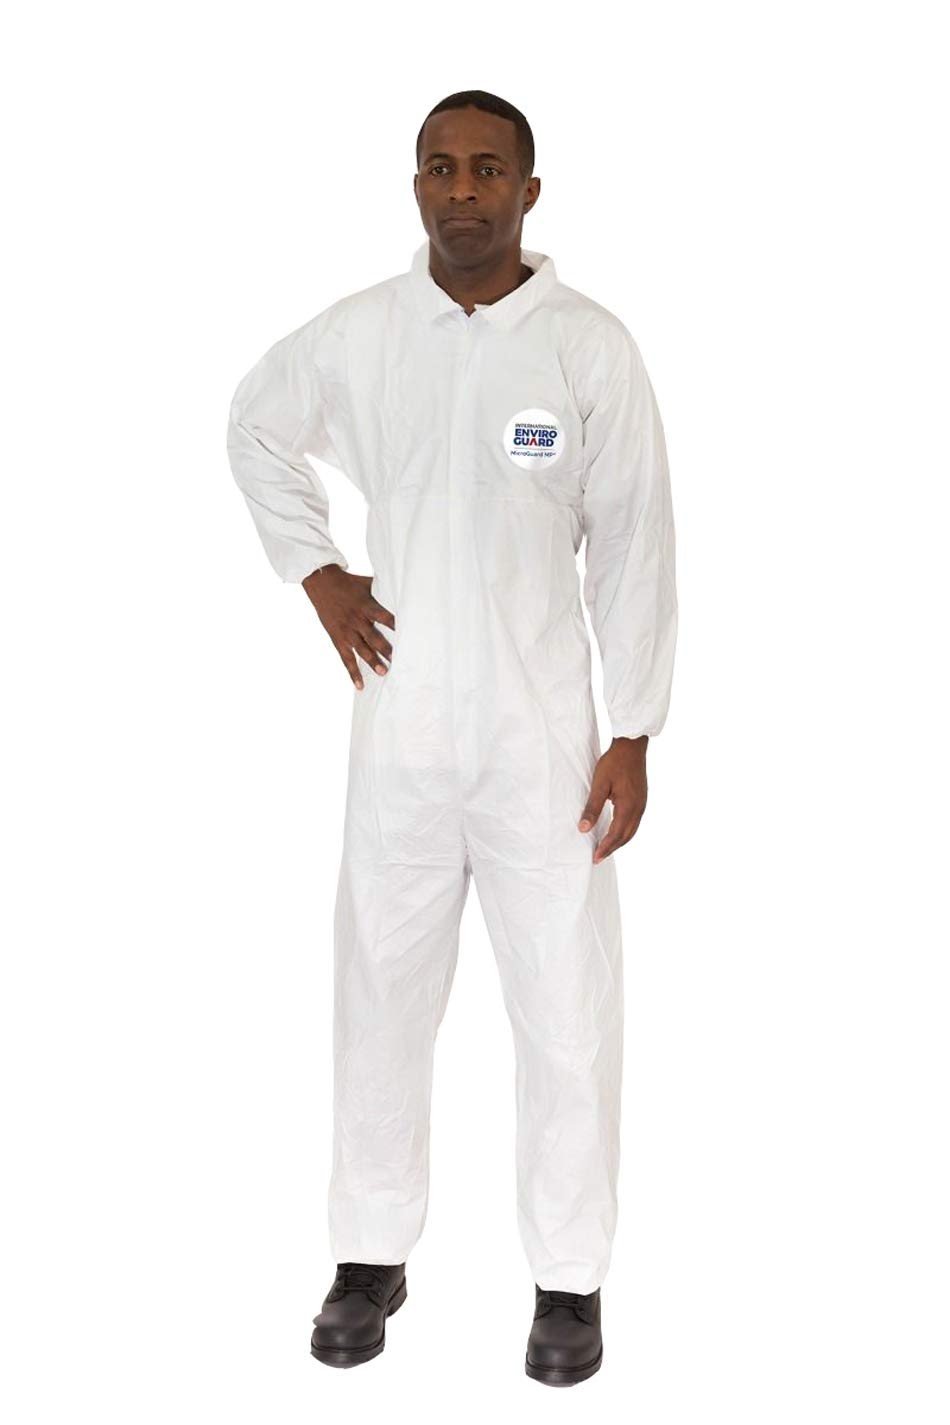 Microguard MP Microporous (White) | Particulate & Splash Protection/Disposable Hazmat Coverall with Elastic Wrist & Ankle for Paint and Particulates (XL, Case of 25) by Microguard MP (Image #5)